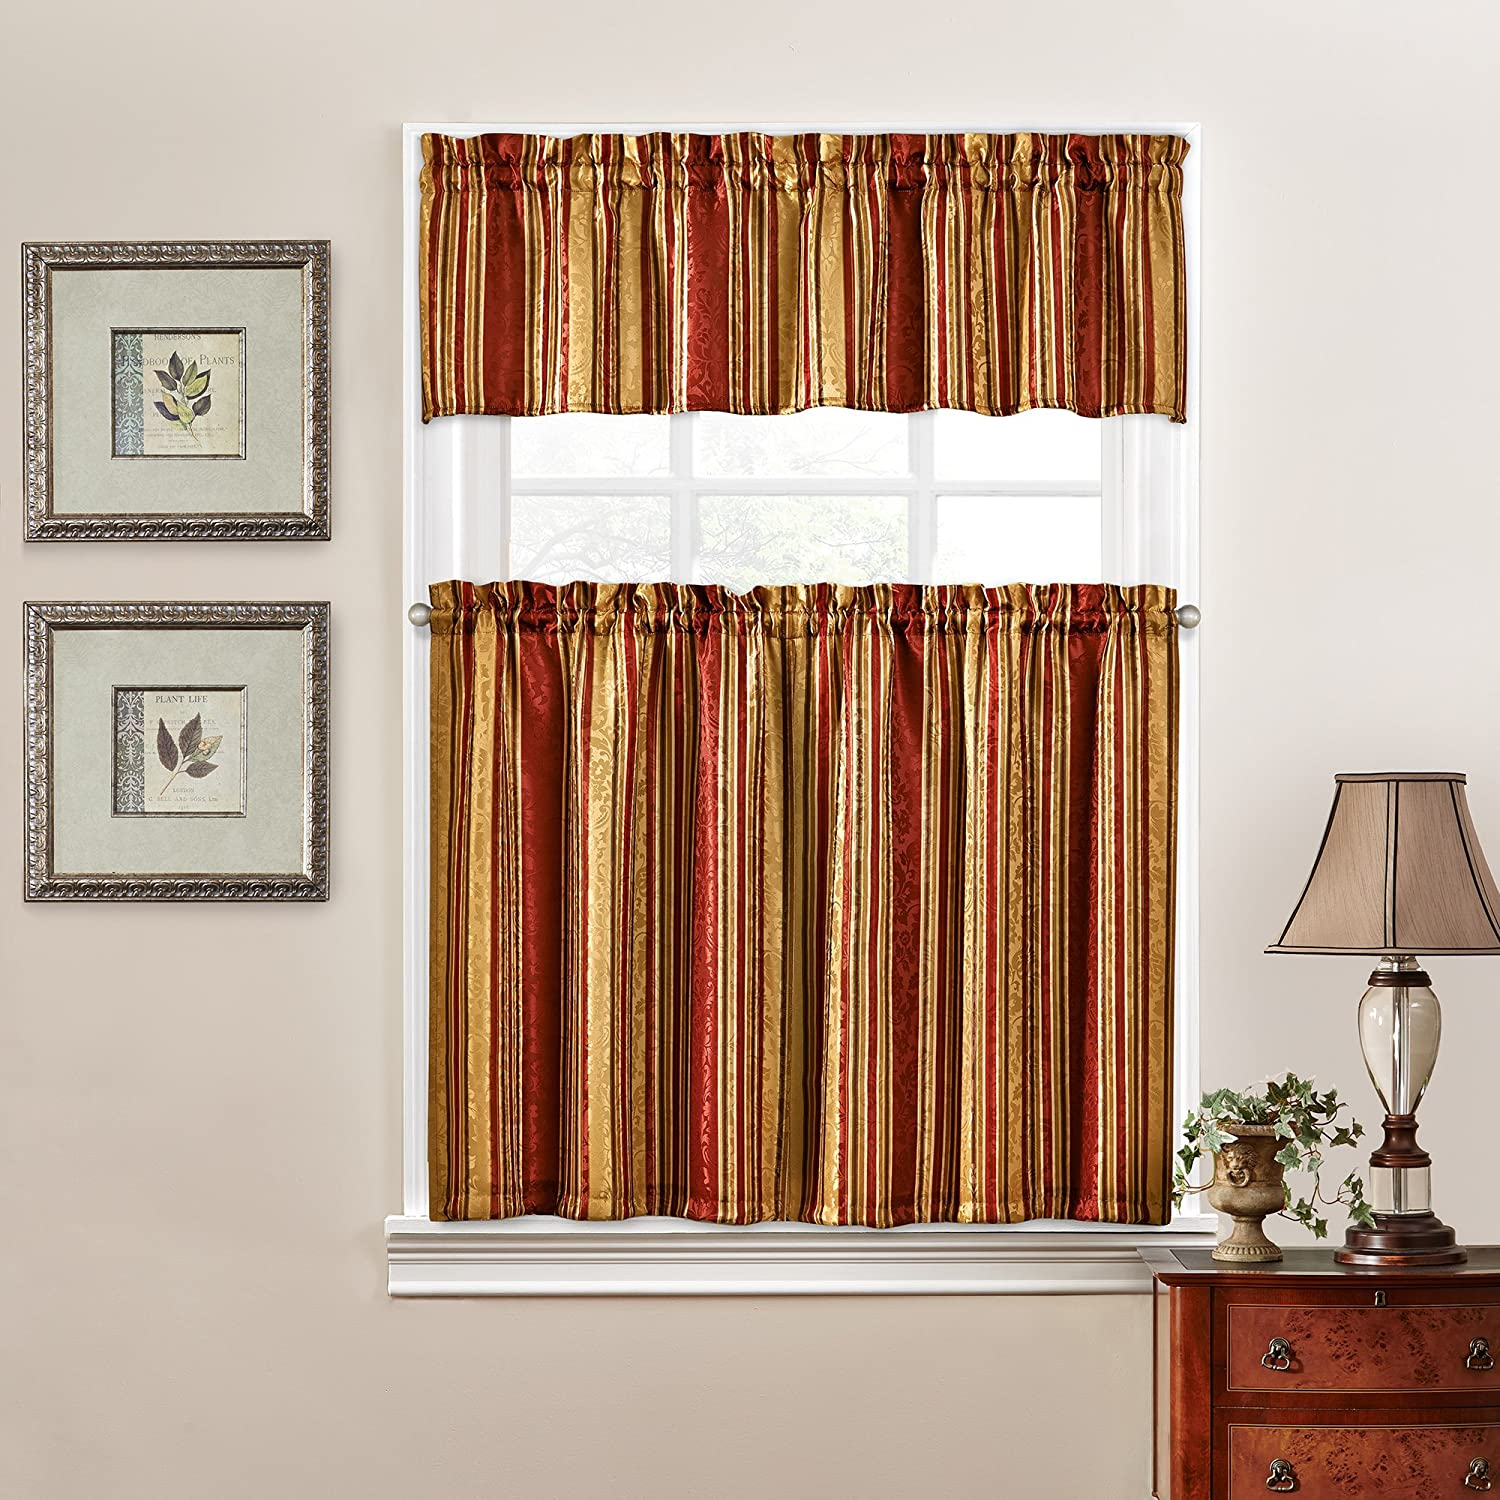 halley window rod valance bag in com piece walmart a complete set one curtain ip